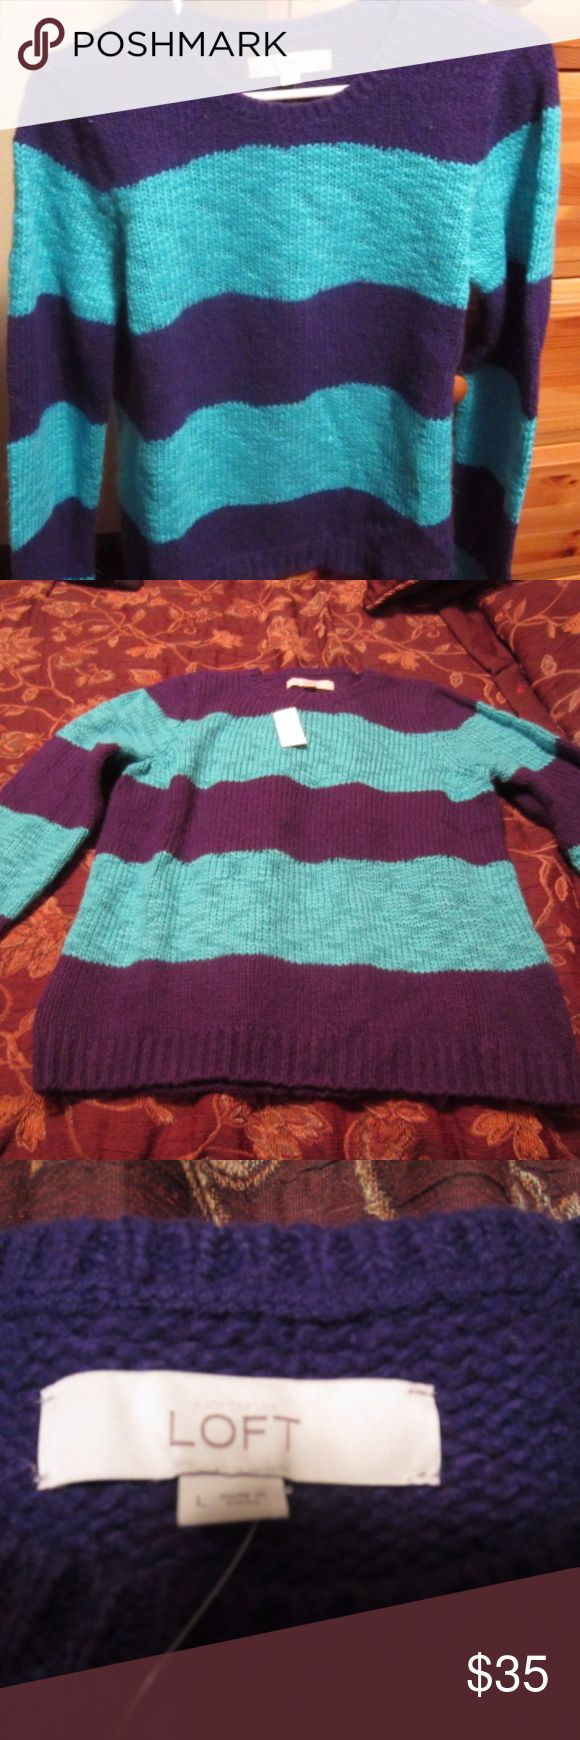 Anne Taylor Loft Striped Sweater WINTER IS COMING!  Get ready with this cute teal and navy striped long sleeved sweater! LOFT Sweaters Crew & Scoop Necks